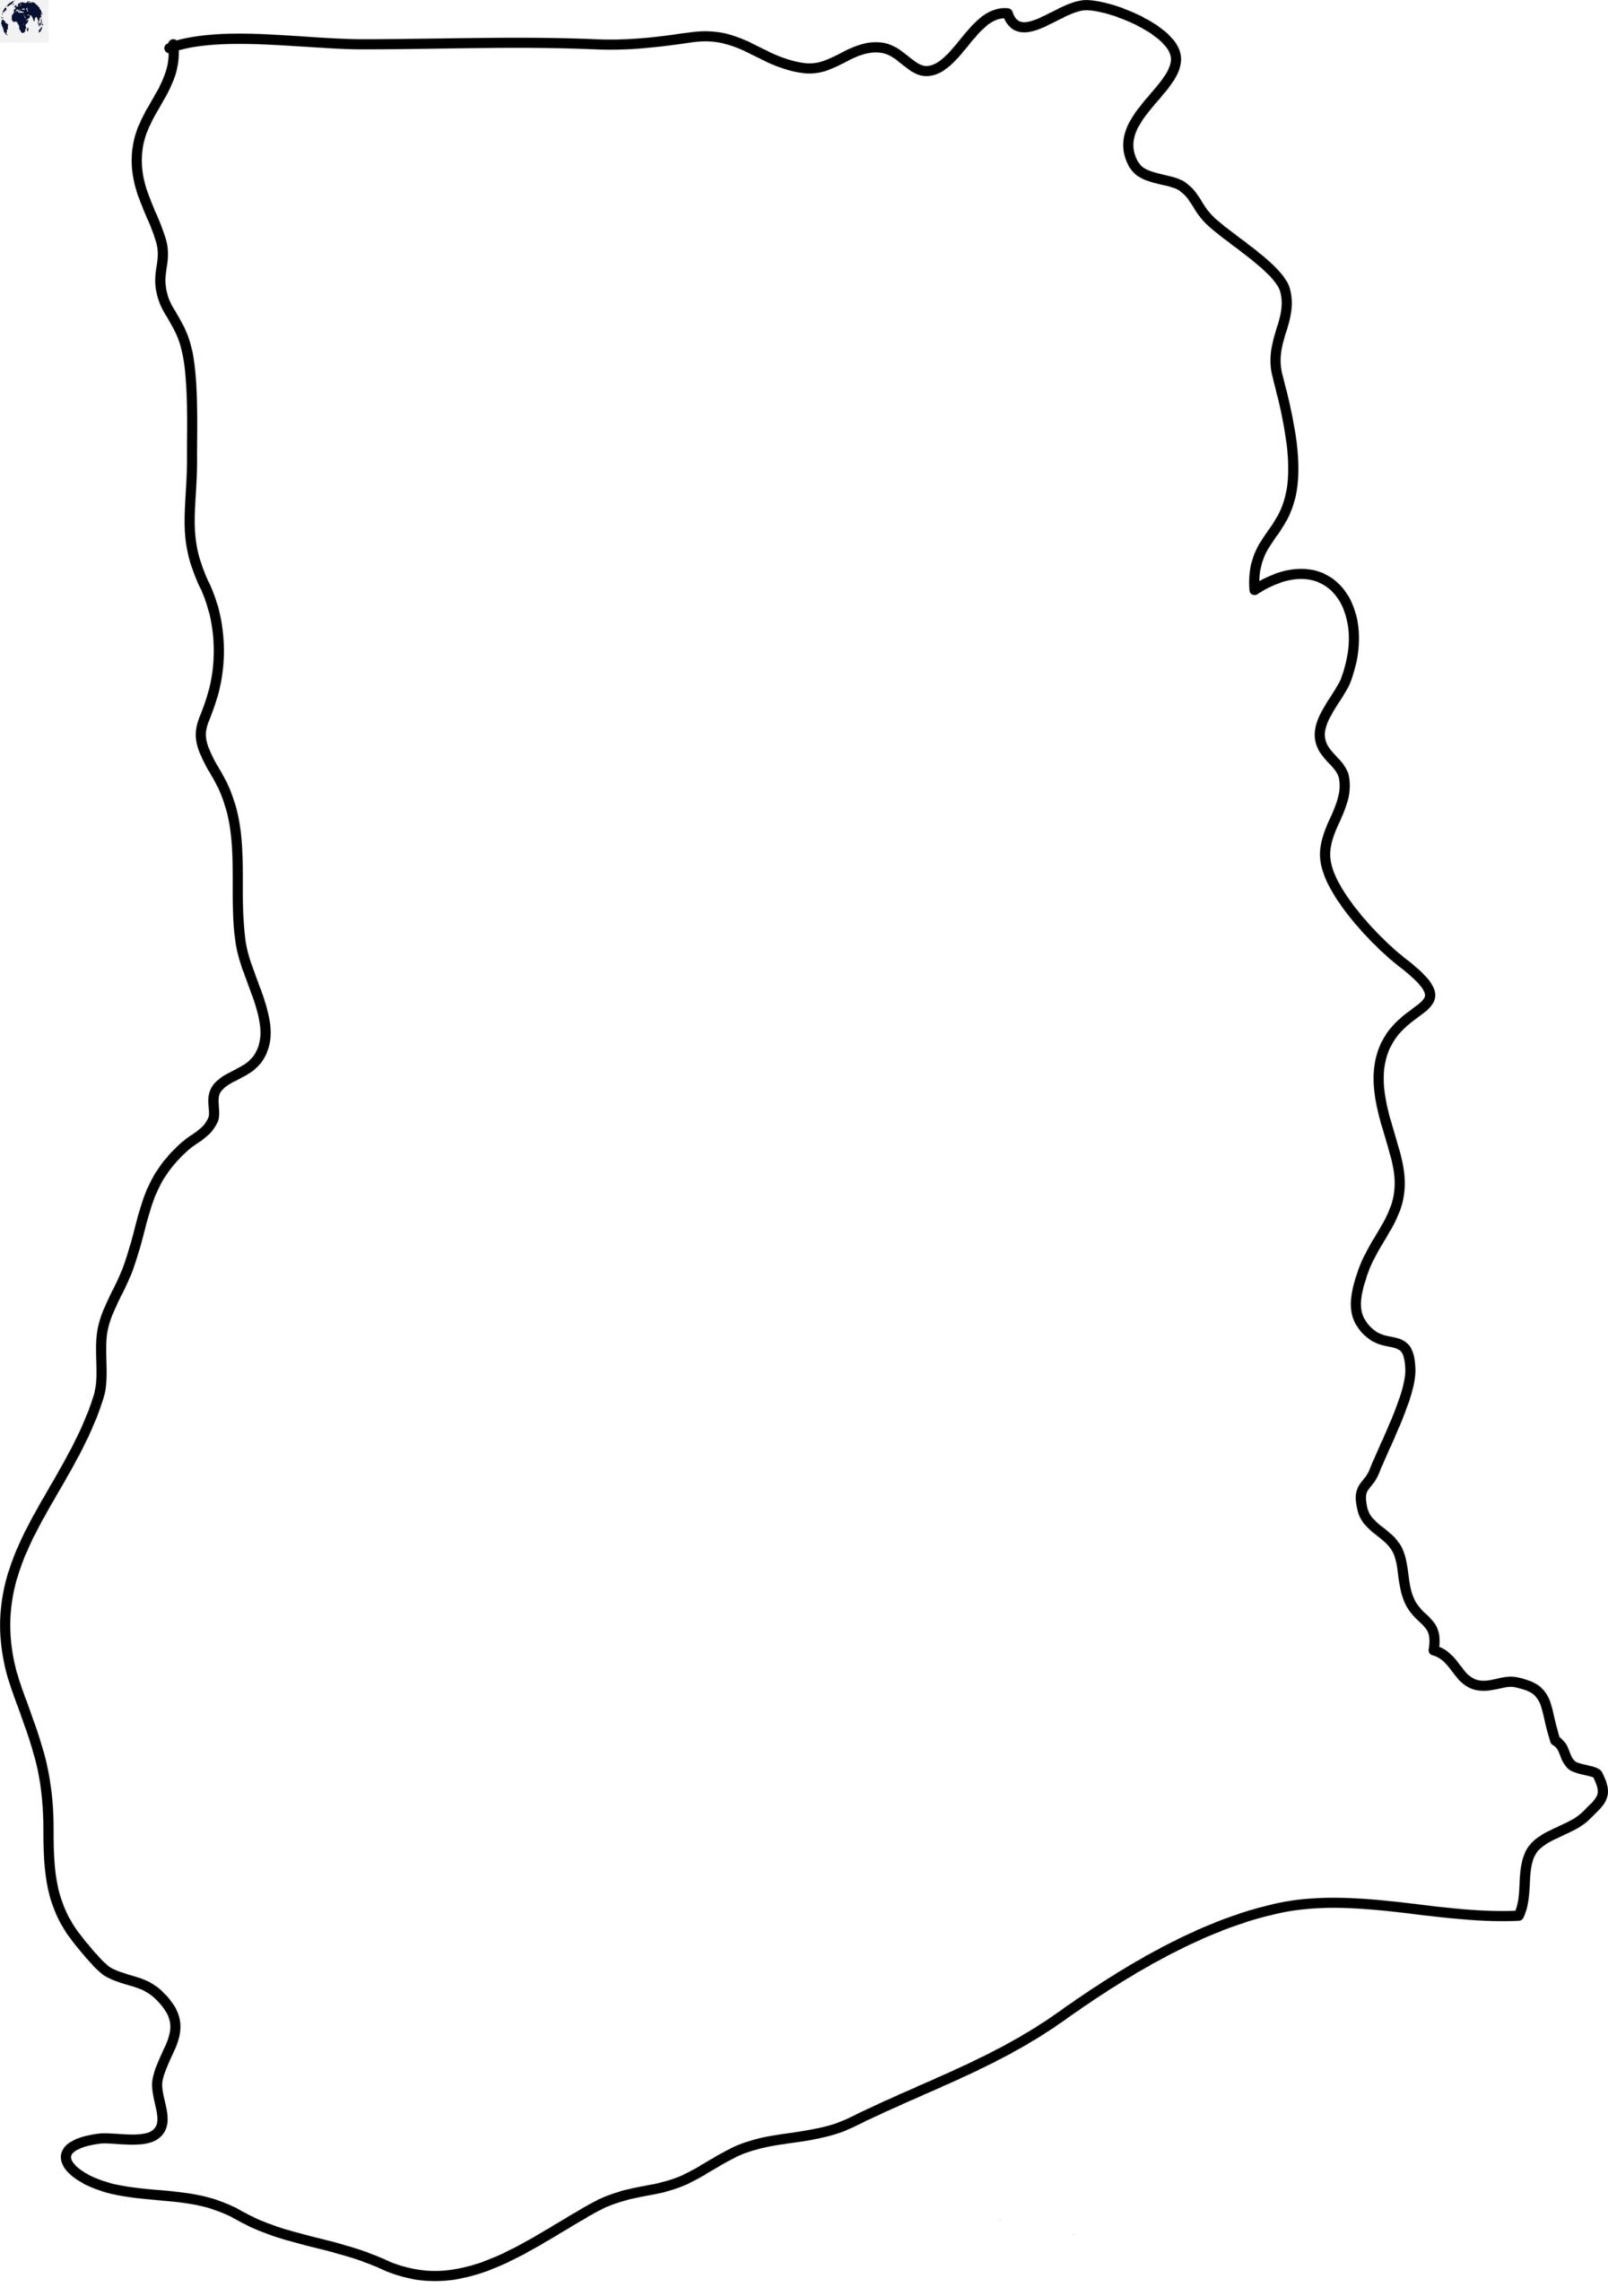 Blank Ghana Map - Outline